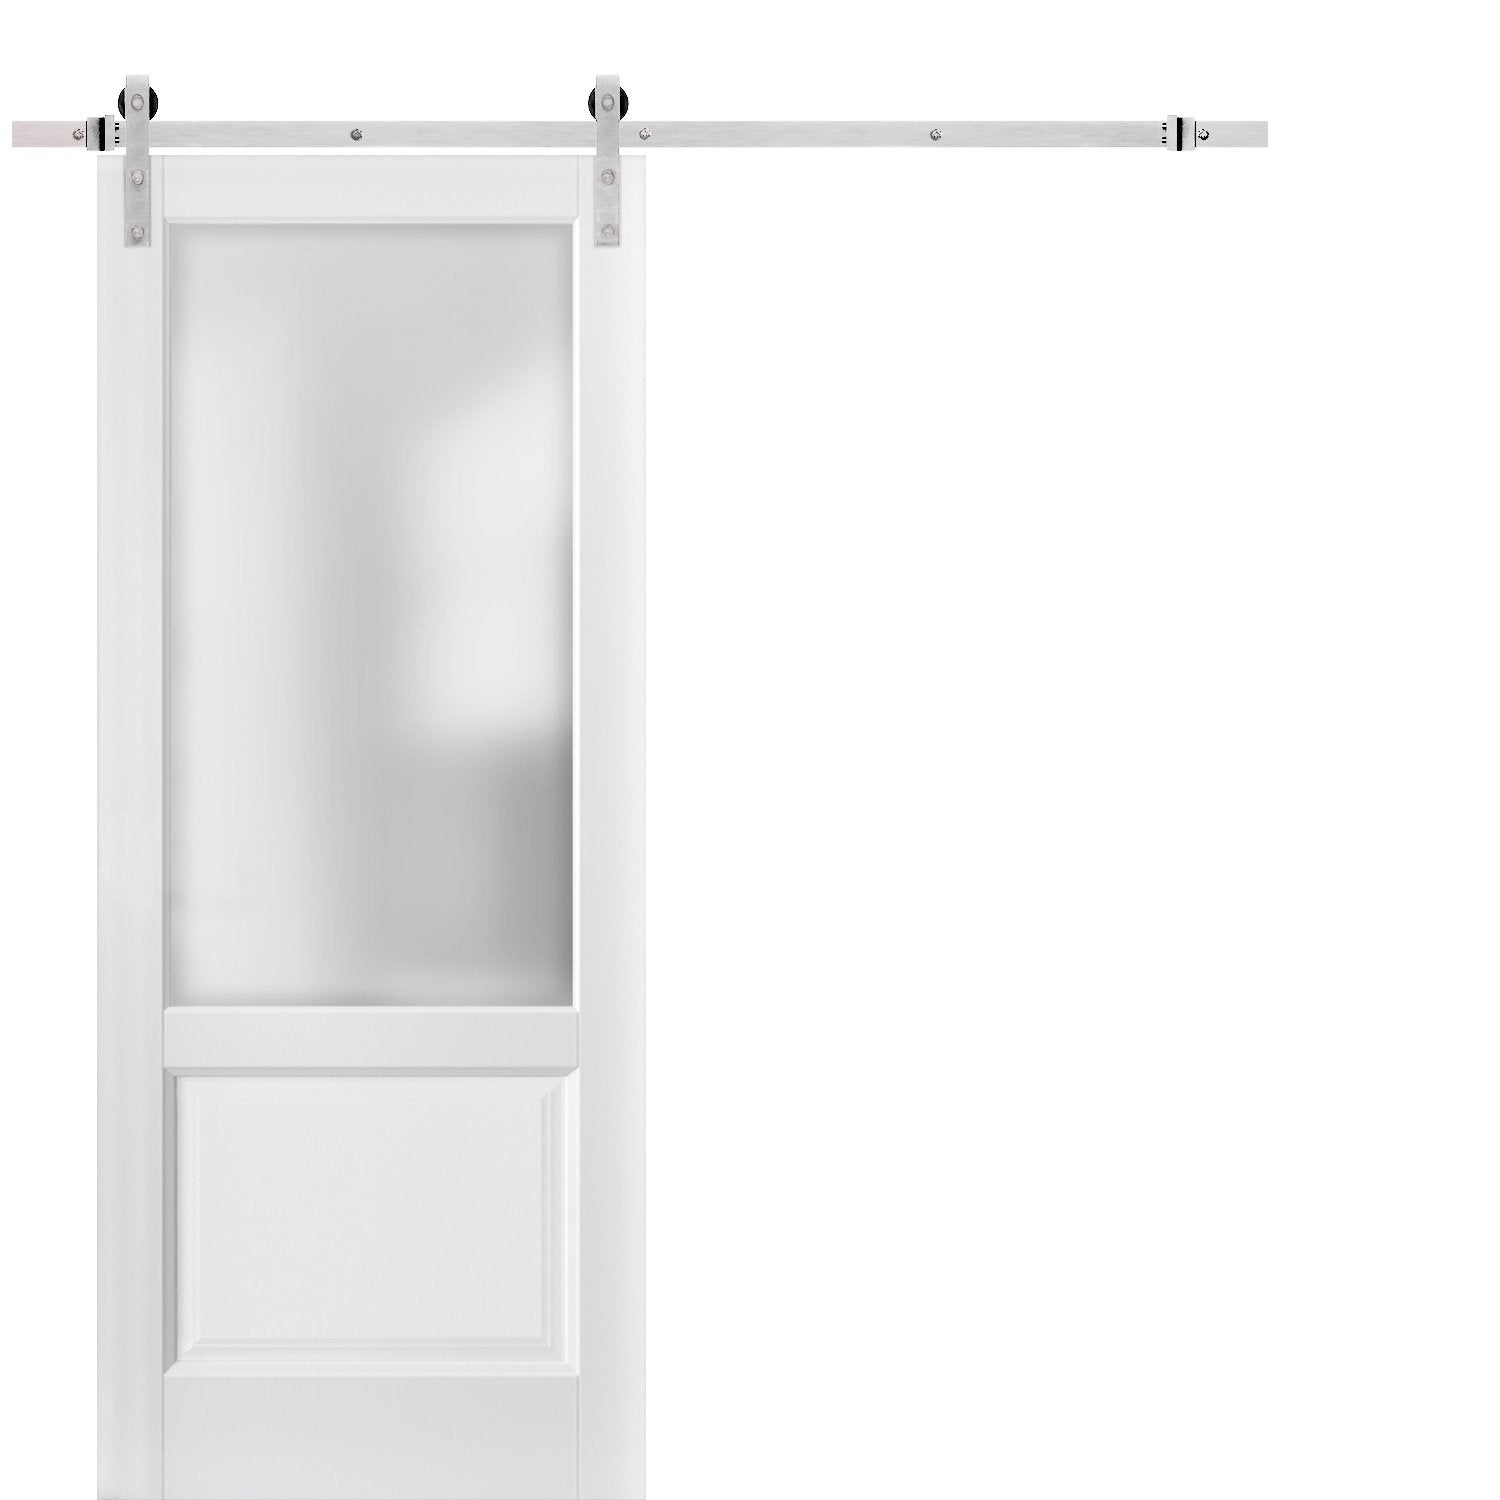 Sliding Barn Door With Stainless Steel 6 6ft Hardware Lucia 22 White Silk With Frosted Opaque Glass Top Mount Rail Hangers Sturdy Silver Set